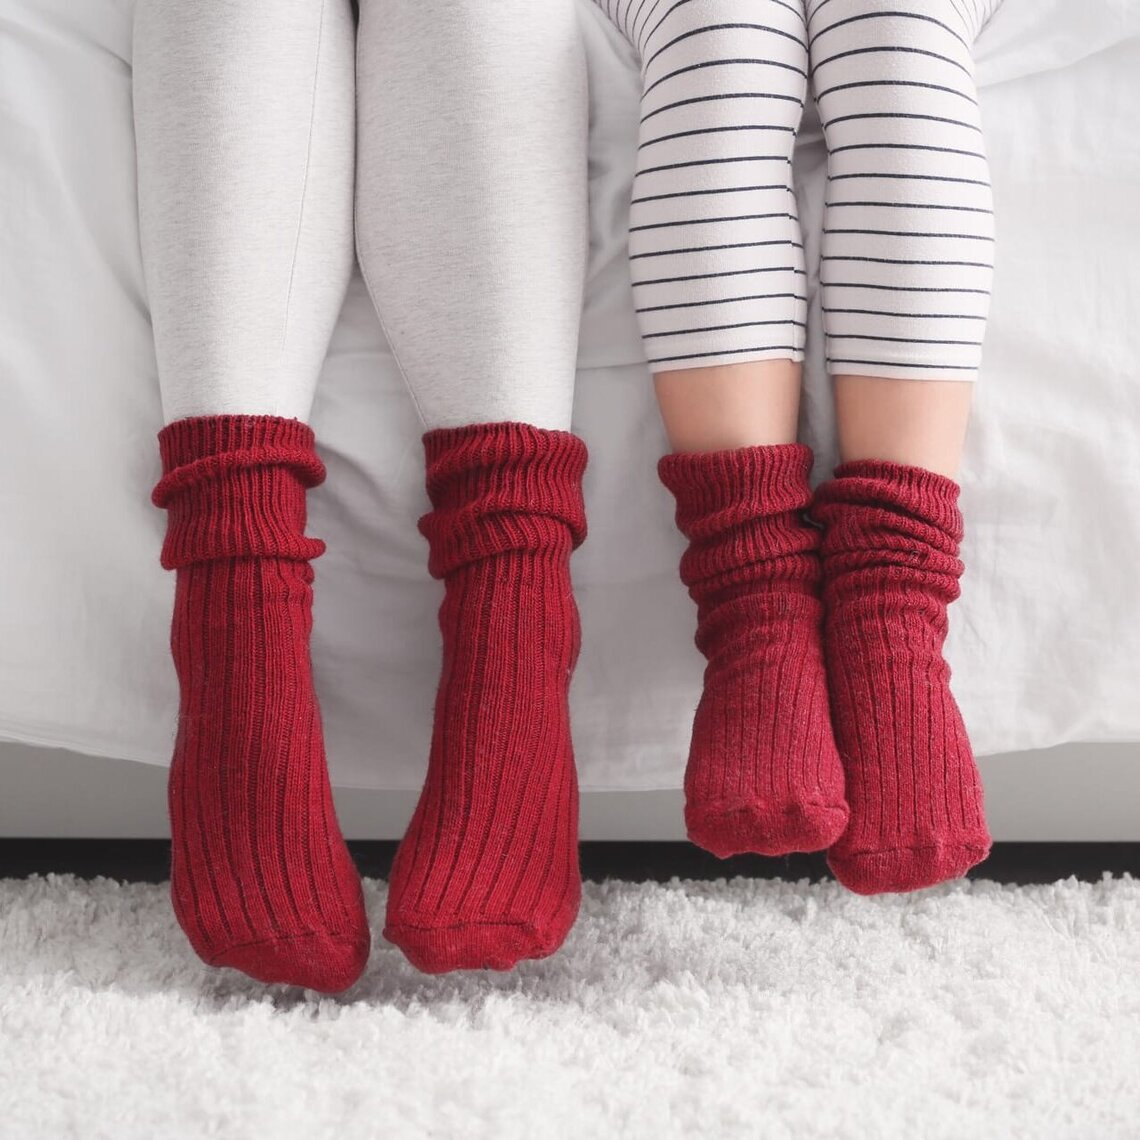 Two pairs of feet with warm socks are dangling from a couch.